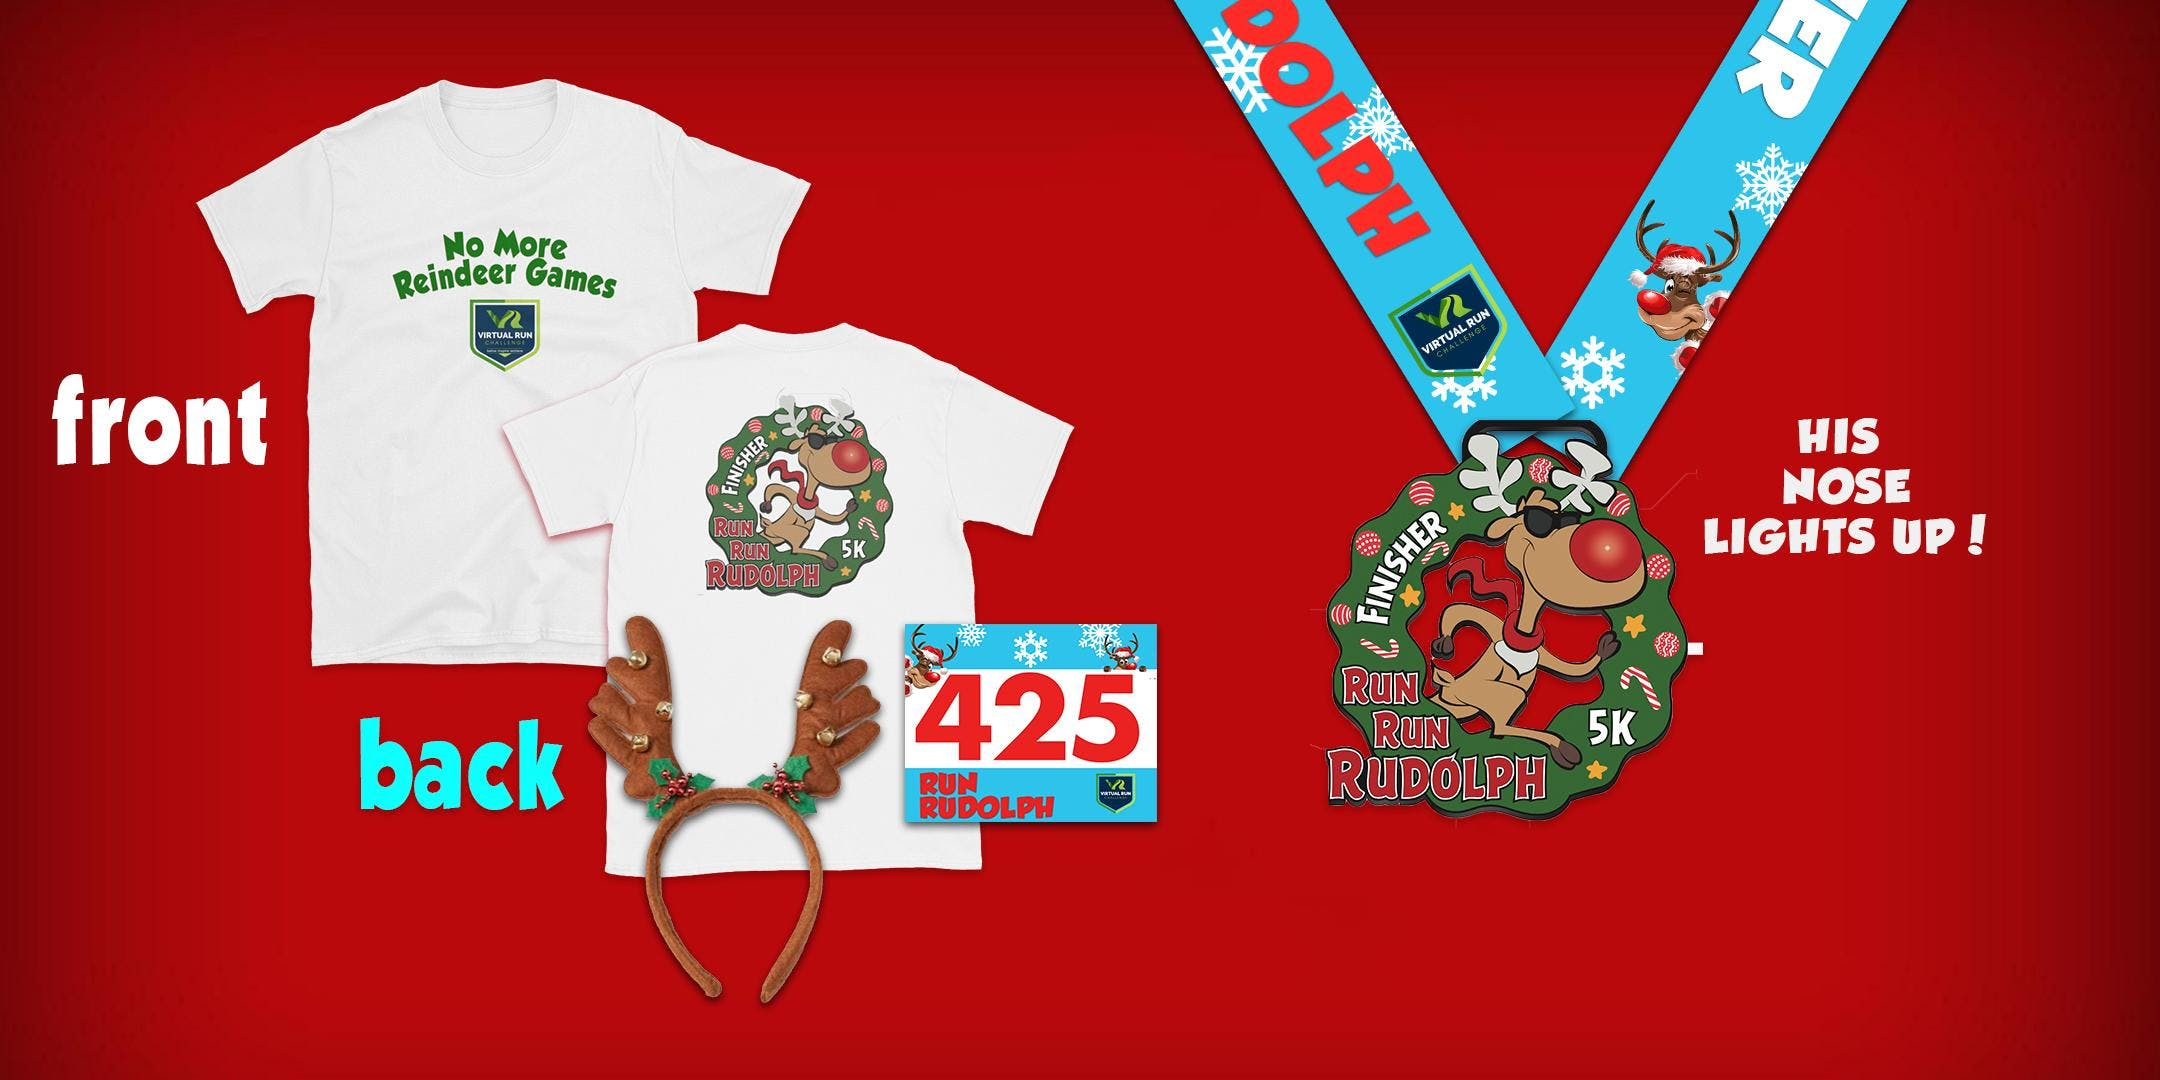 Run Run Rudolph Virtual 5k Run Walk - Glendale